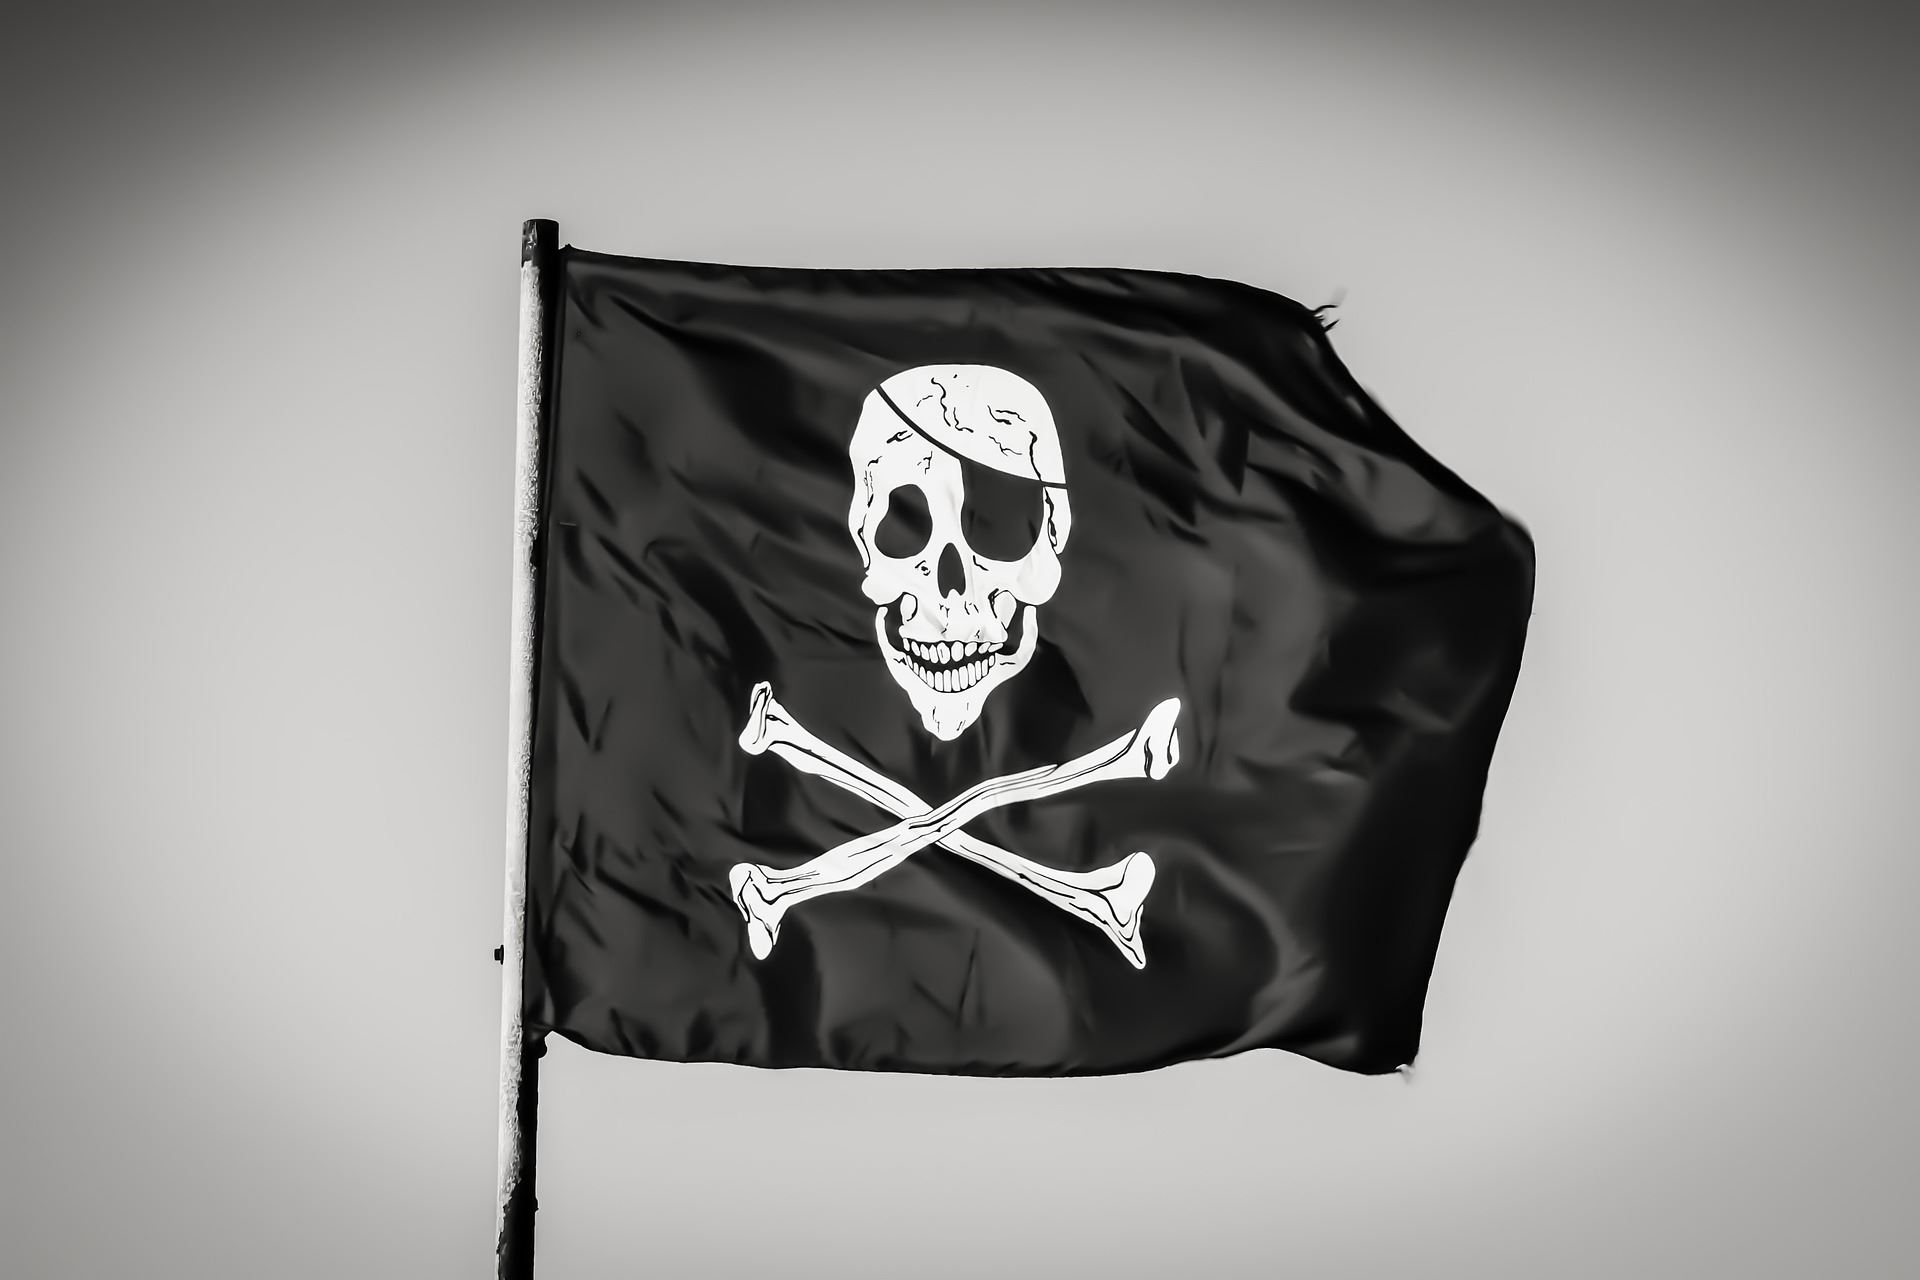 pirate-flag-2338264_1920